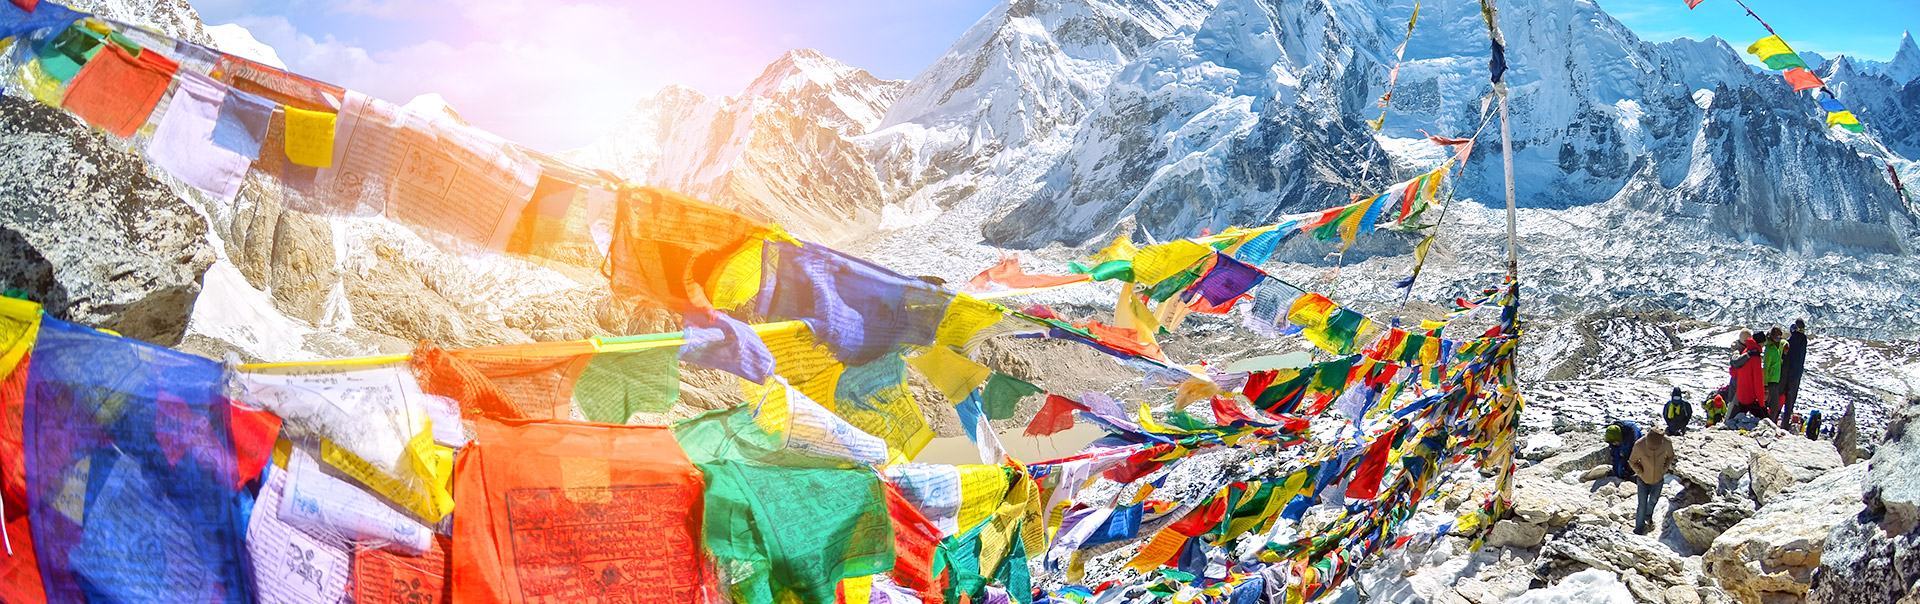 Nepal & Bhutan Adventure Tour | Wendy Wu Tours